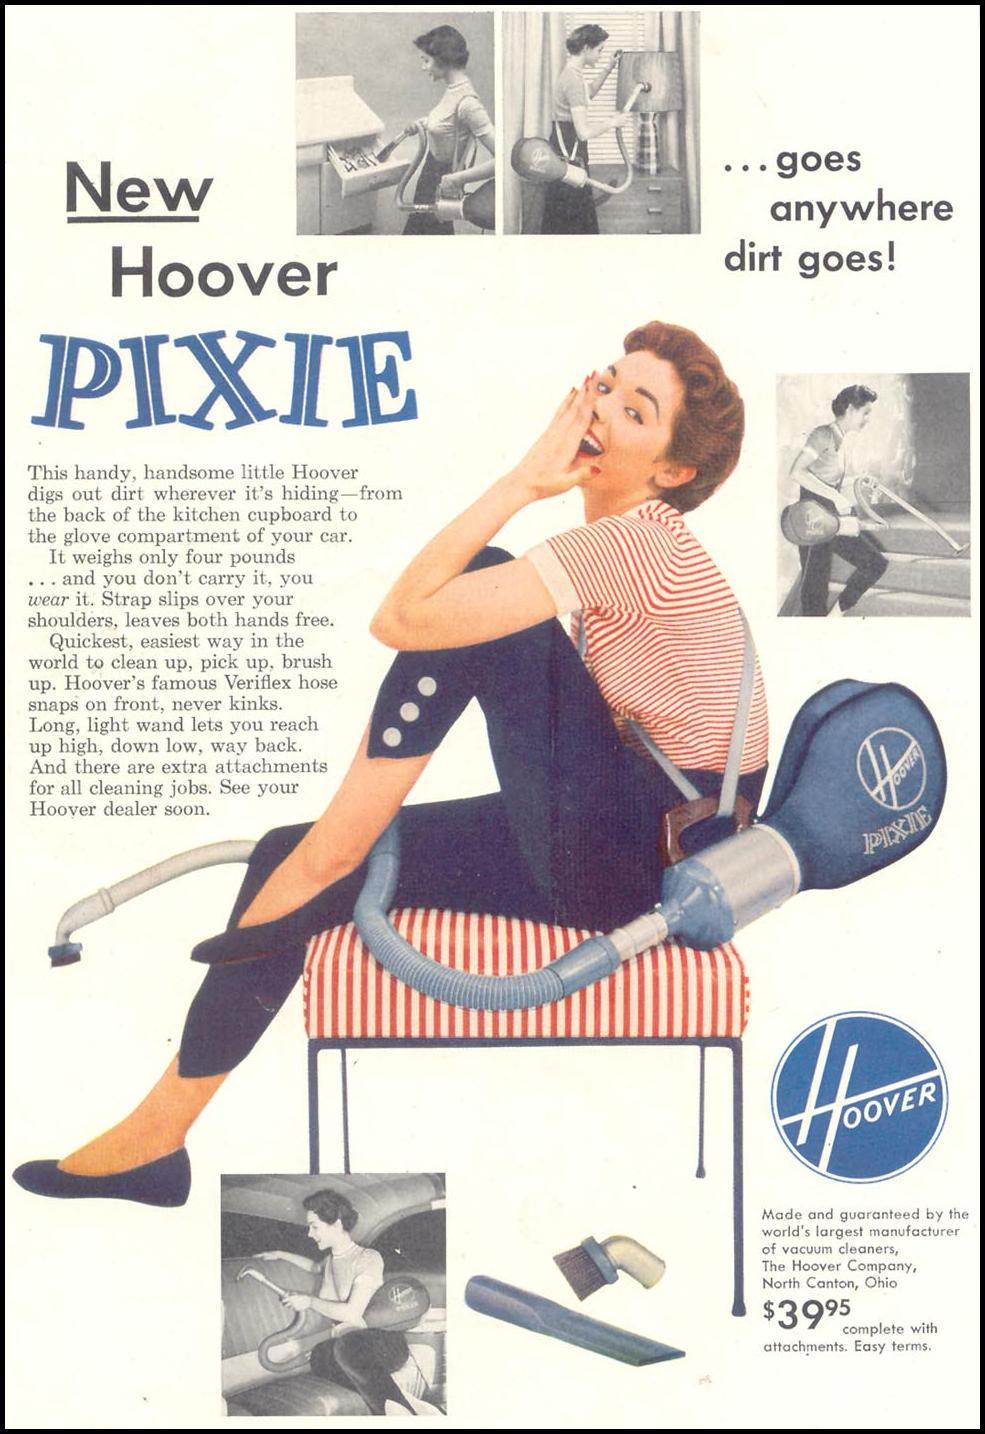 HOOVER PIXIE VACUUM CLEANER